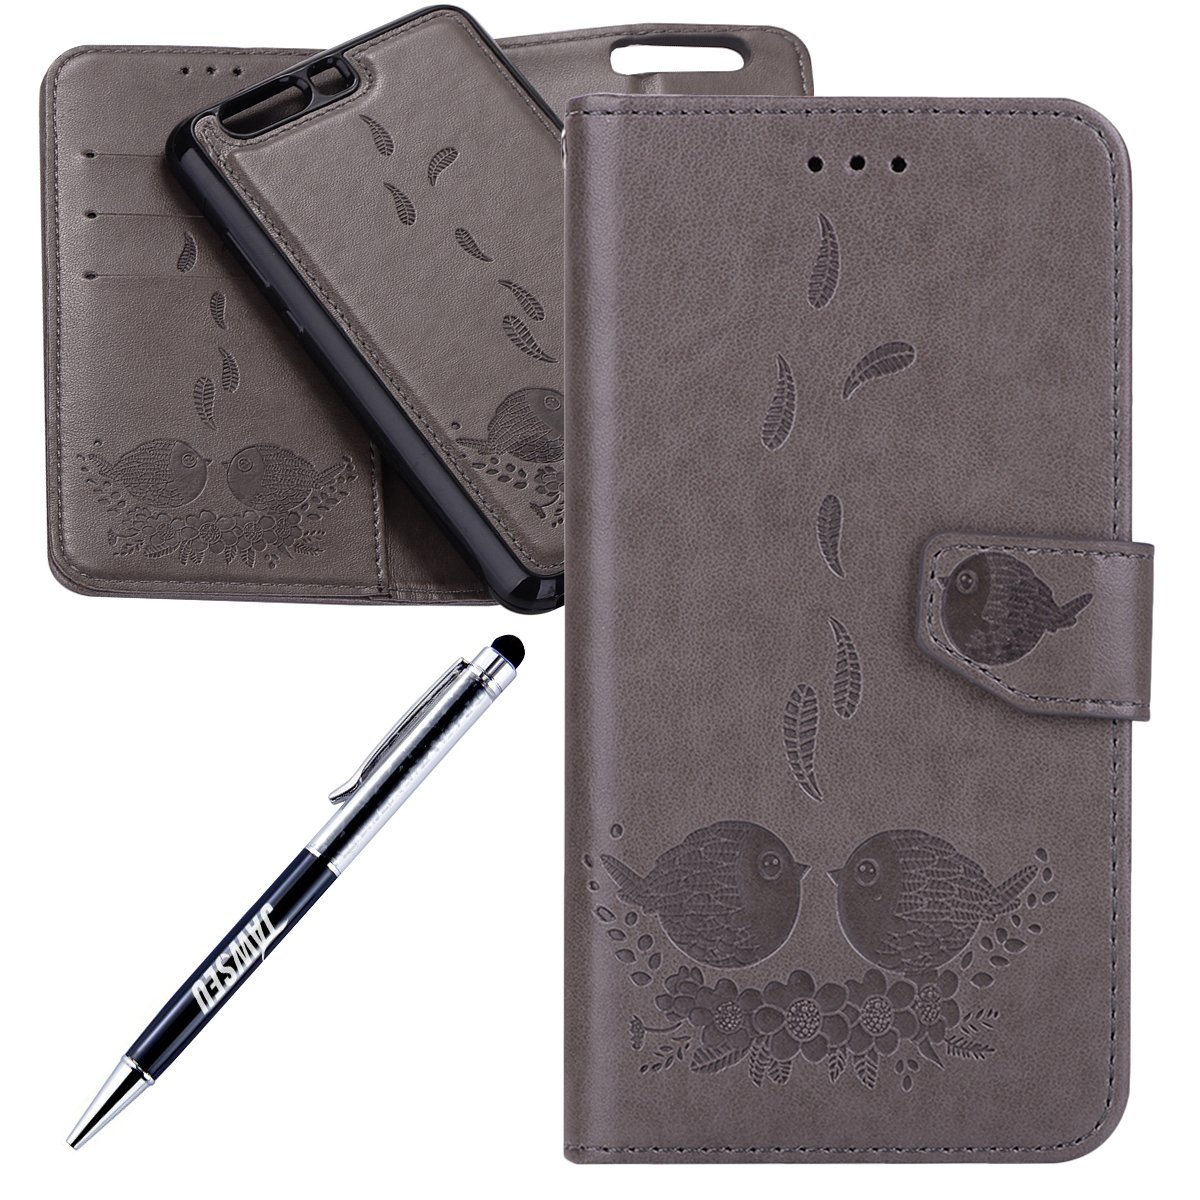 Pelle Portafoglio Custodia per Huawei P10 Plus Wallet Pouch Goffratura Modello con Super Sotti JAWSEU Huawei P10 Plus Custodia Portafoglio Libro Disegno PU Leather Flip Case Custodia Huawei P10 Plus Shock-Absorption Huawei P10 Plus Cover Custodia Pelle